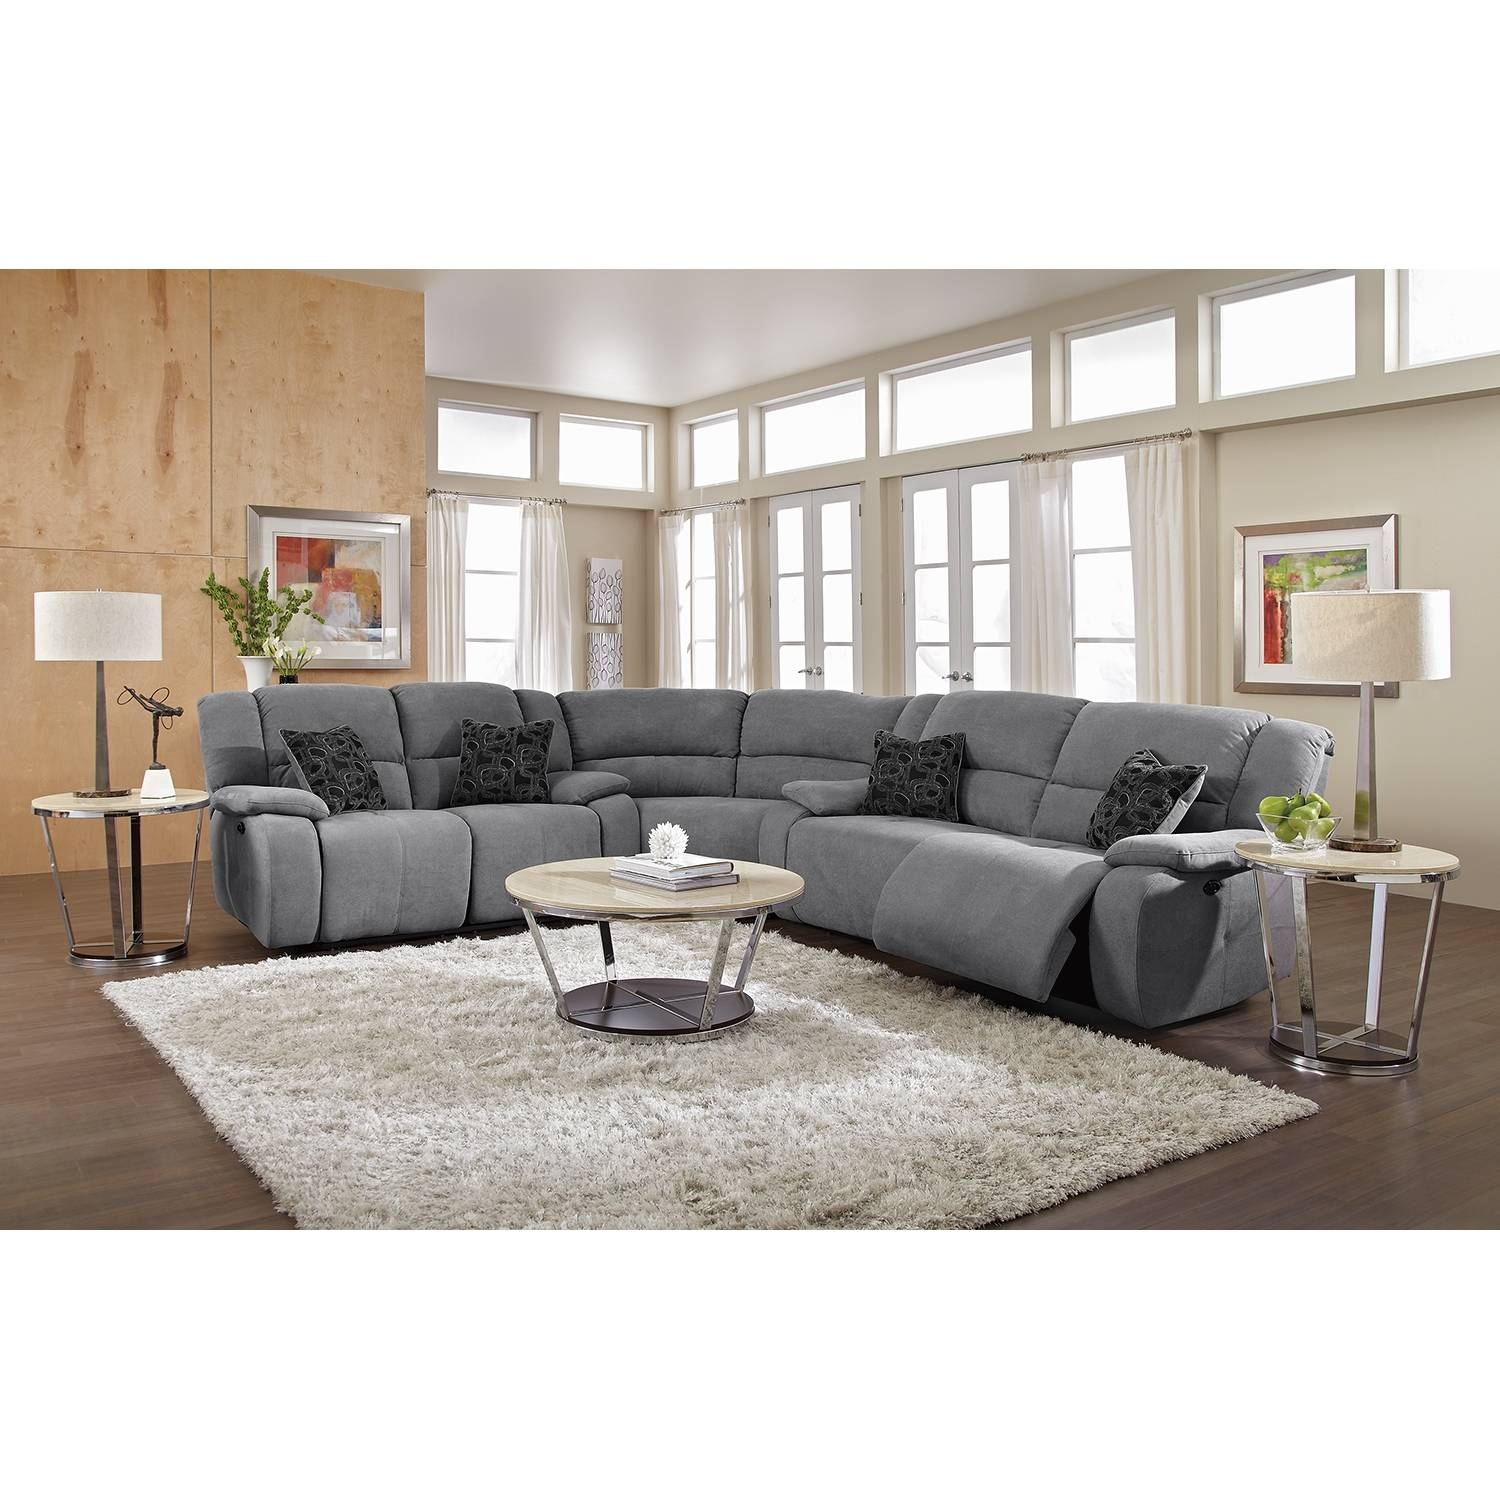 Living Room: 3 Piece Couch Covers | L Shaped Couch Covers in 3 Piece Sectional Sofa Slipcovers (Image 17 of 33)